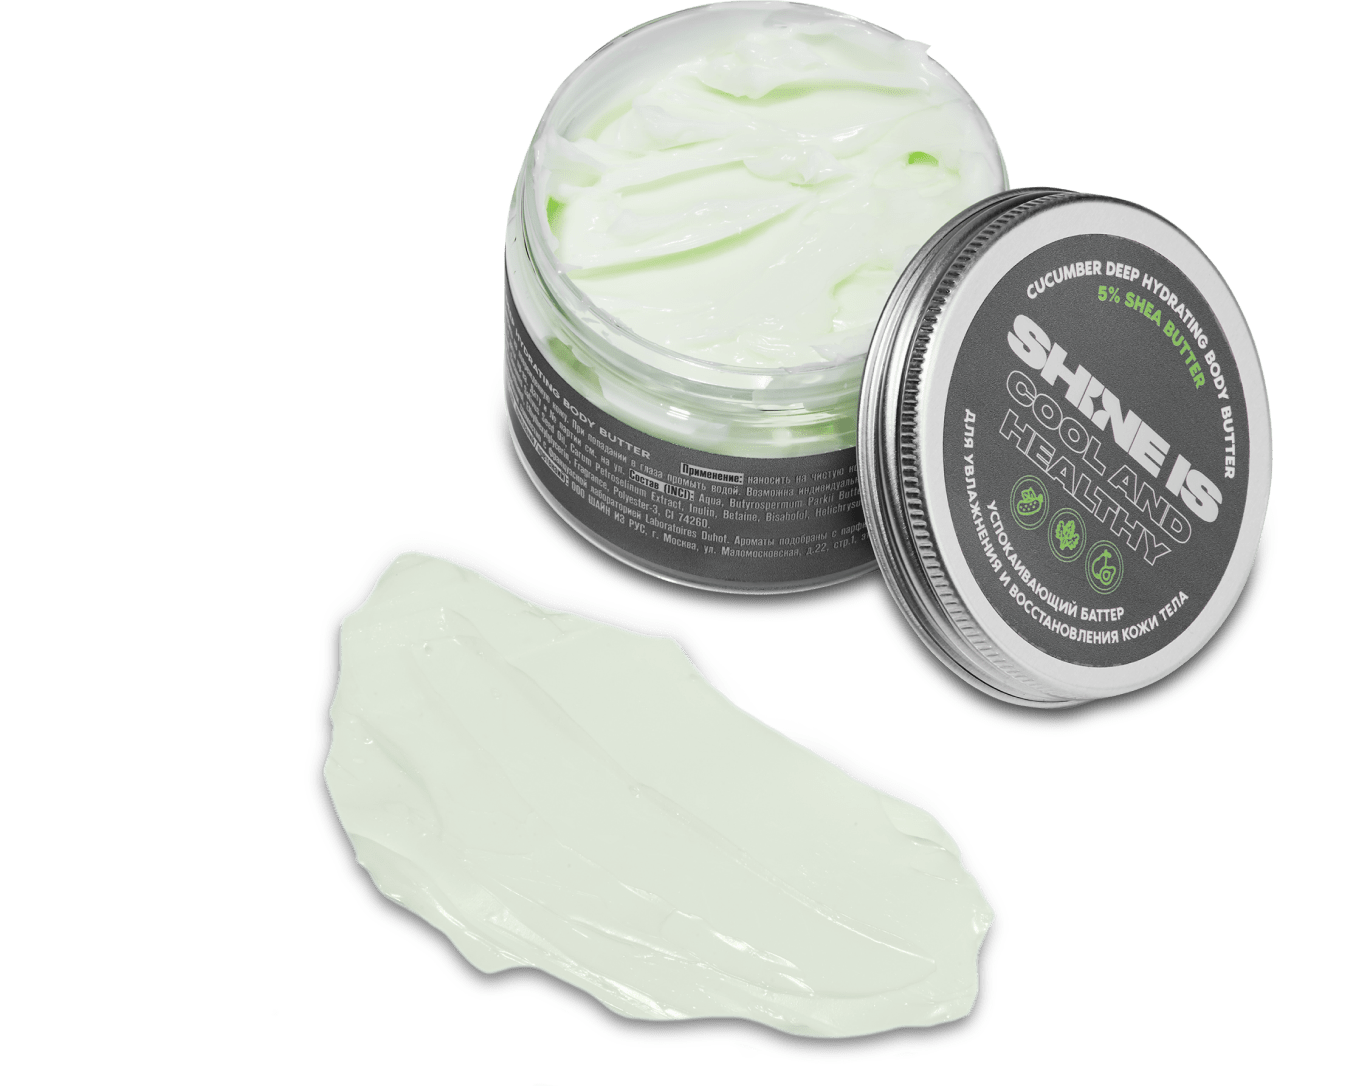 Cucumber Deep Hydrating Body Butter